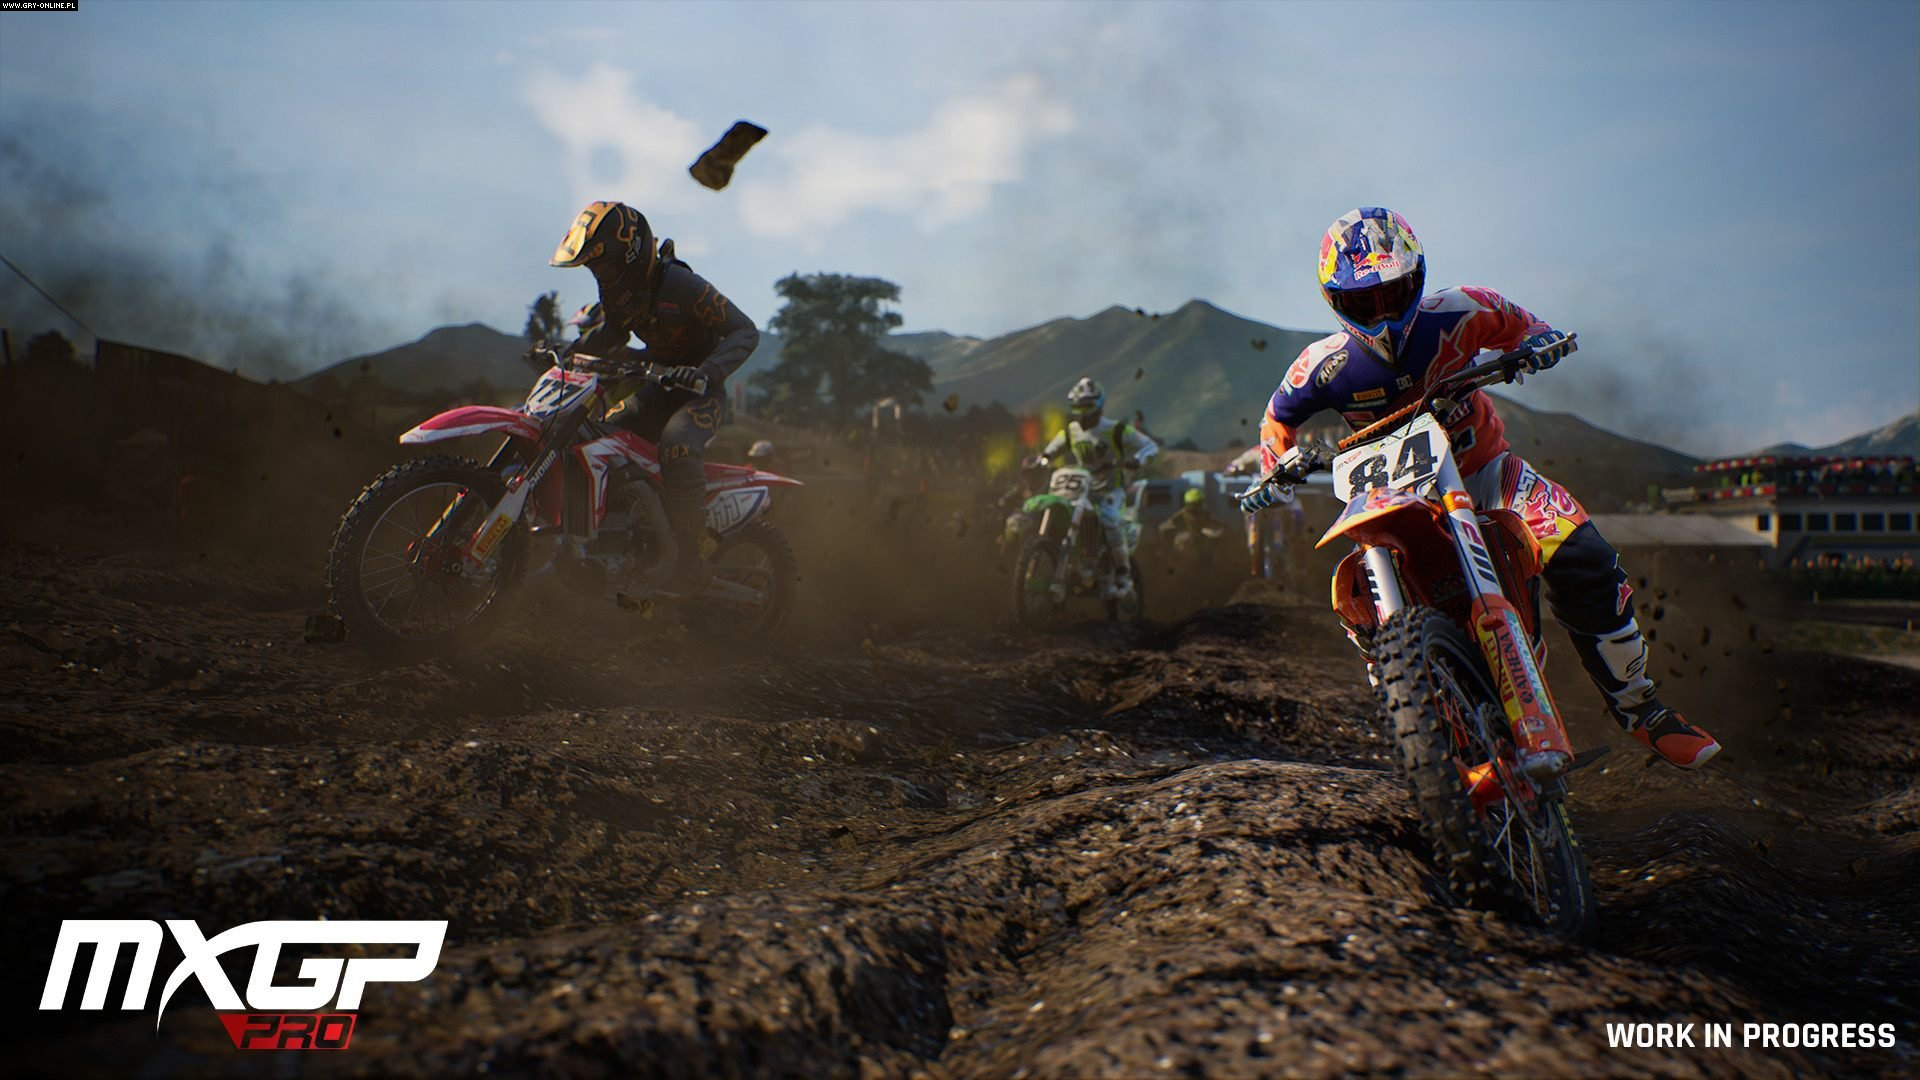 MXGP PRO PC, PS4, XONE Games Image 23/42, Milestone